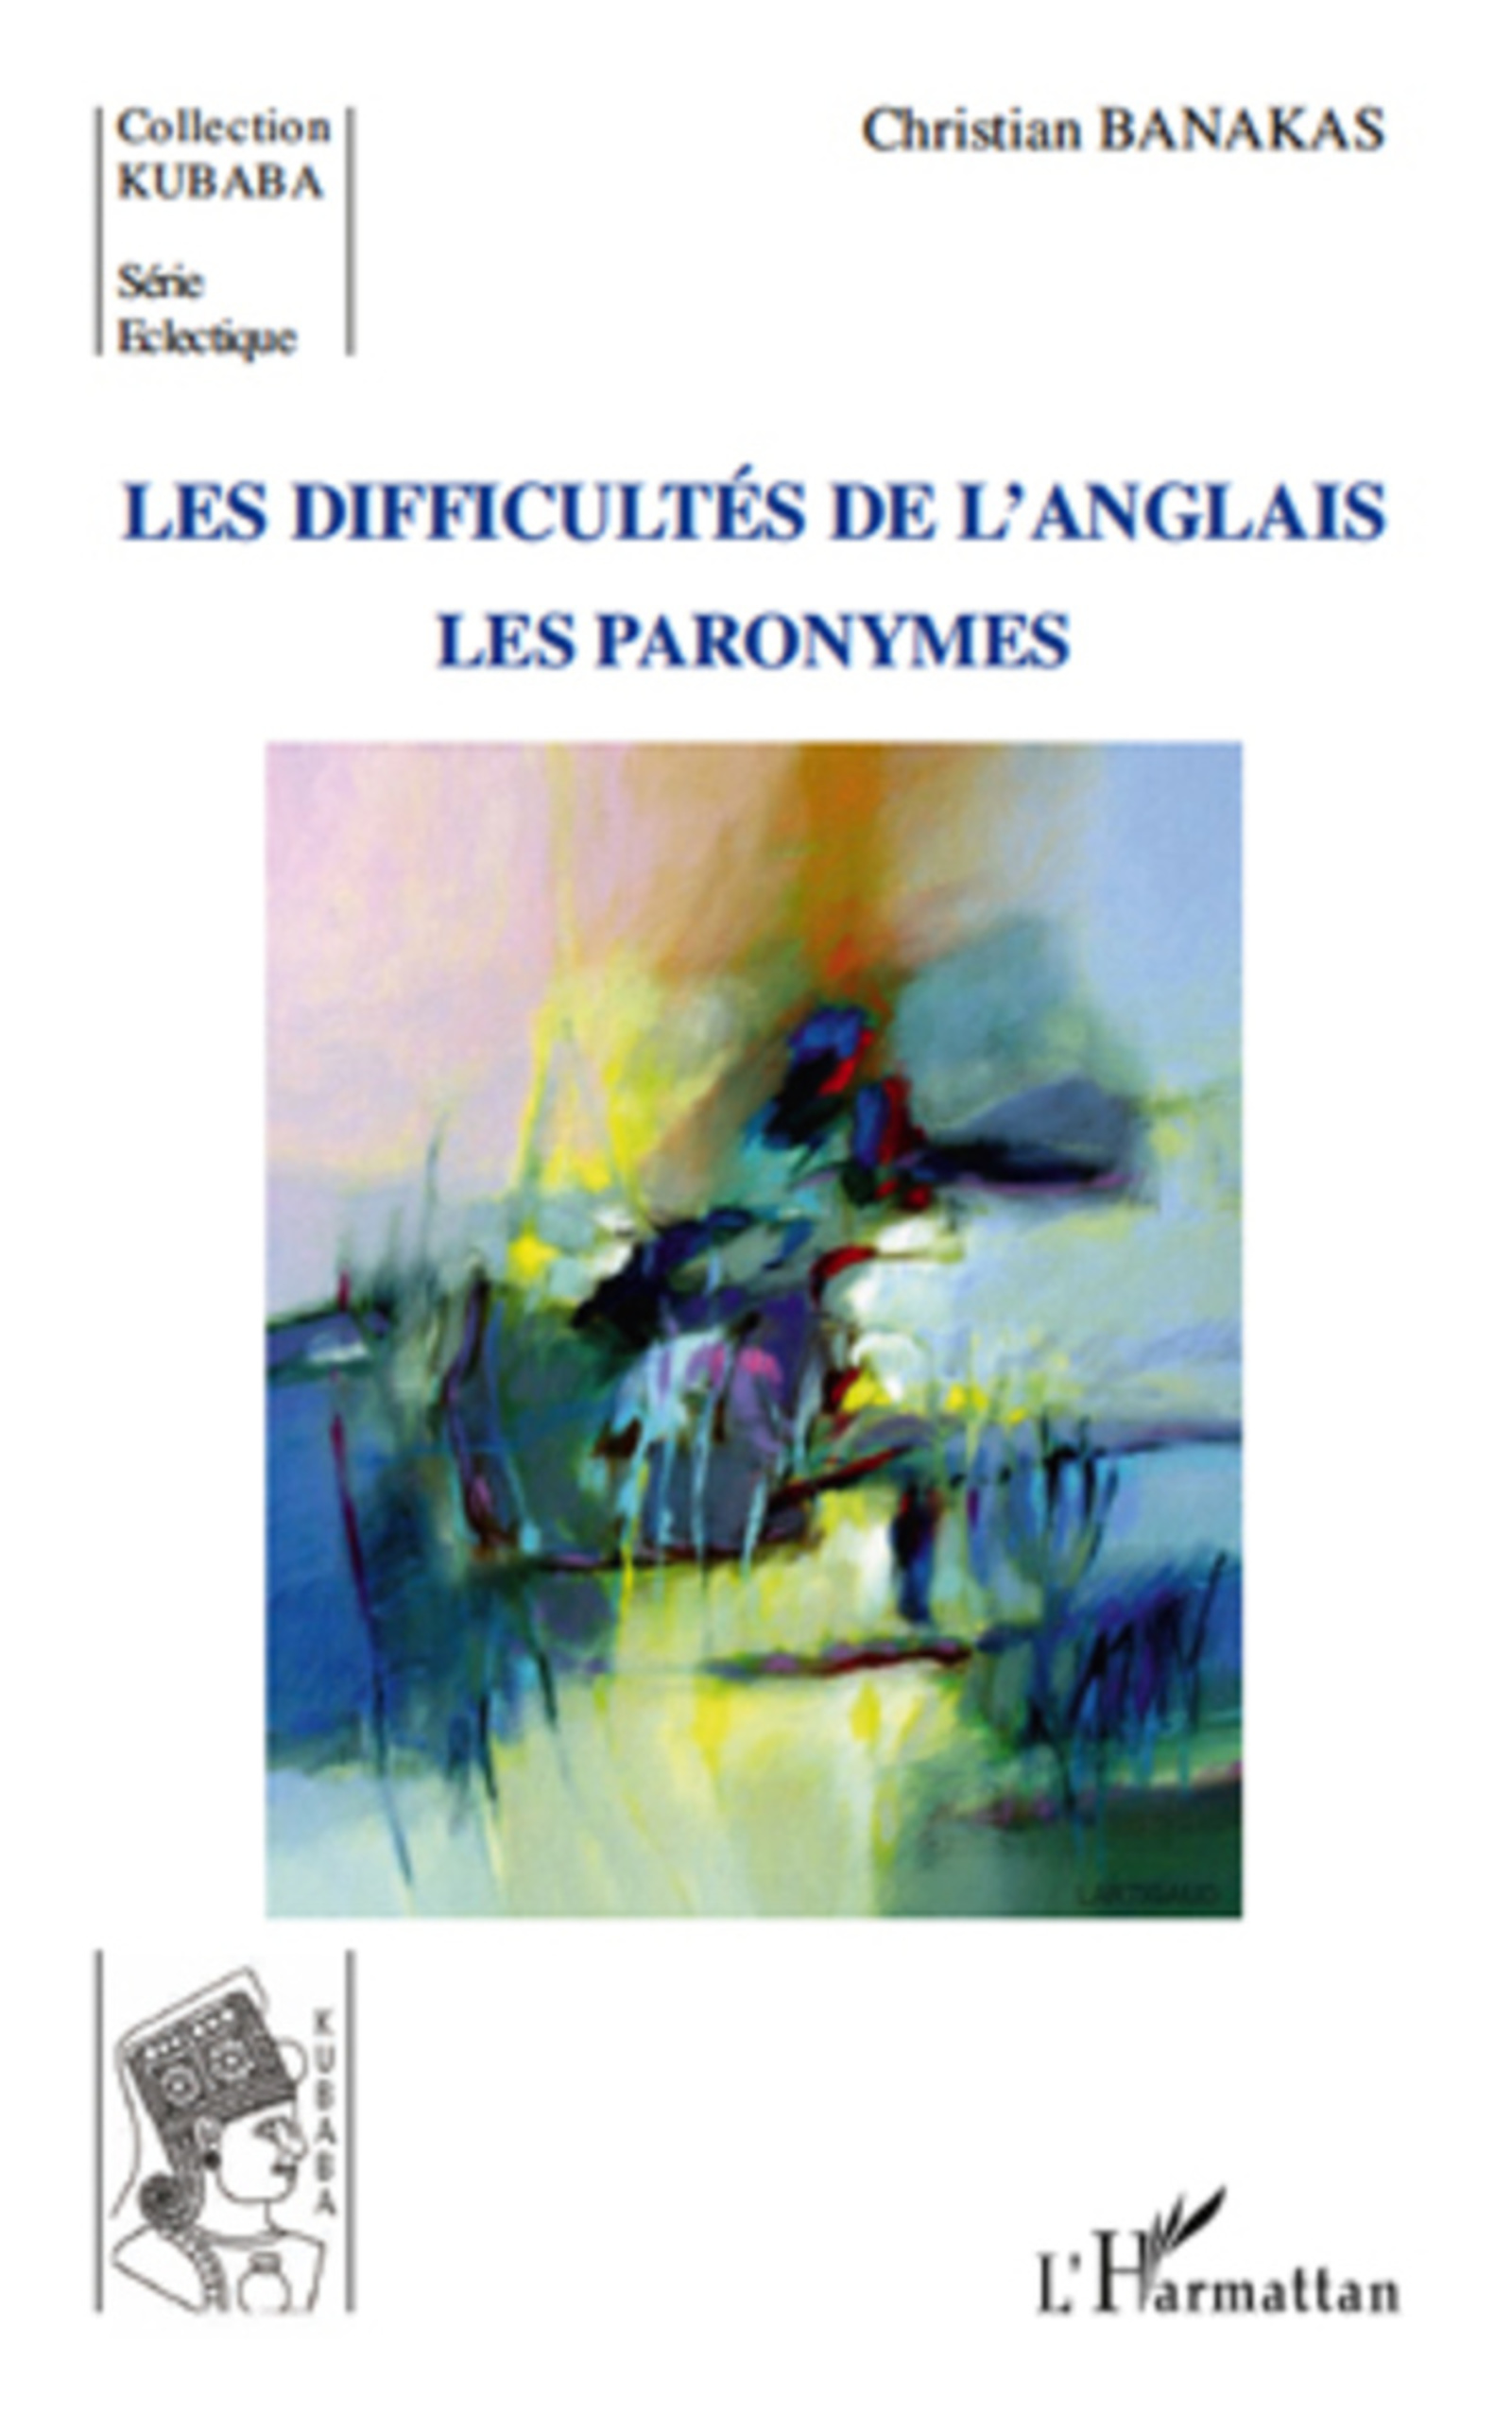 Traduction de rencontrer des difficultes en anglais